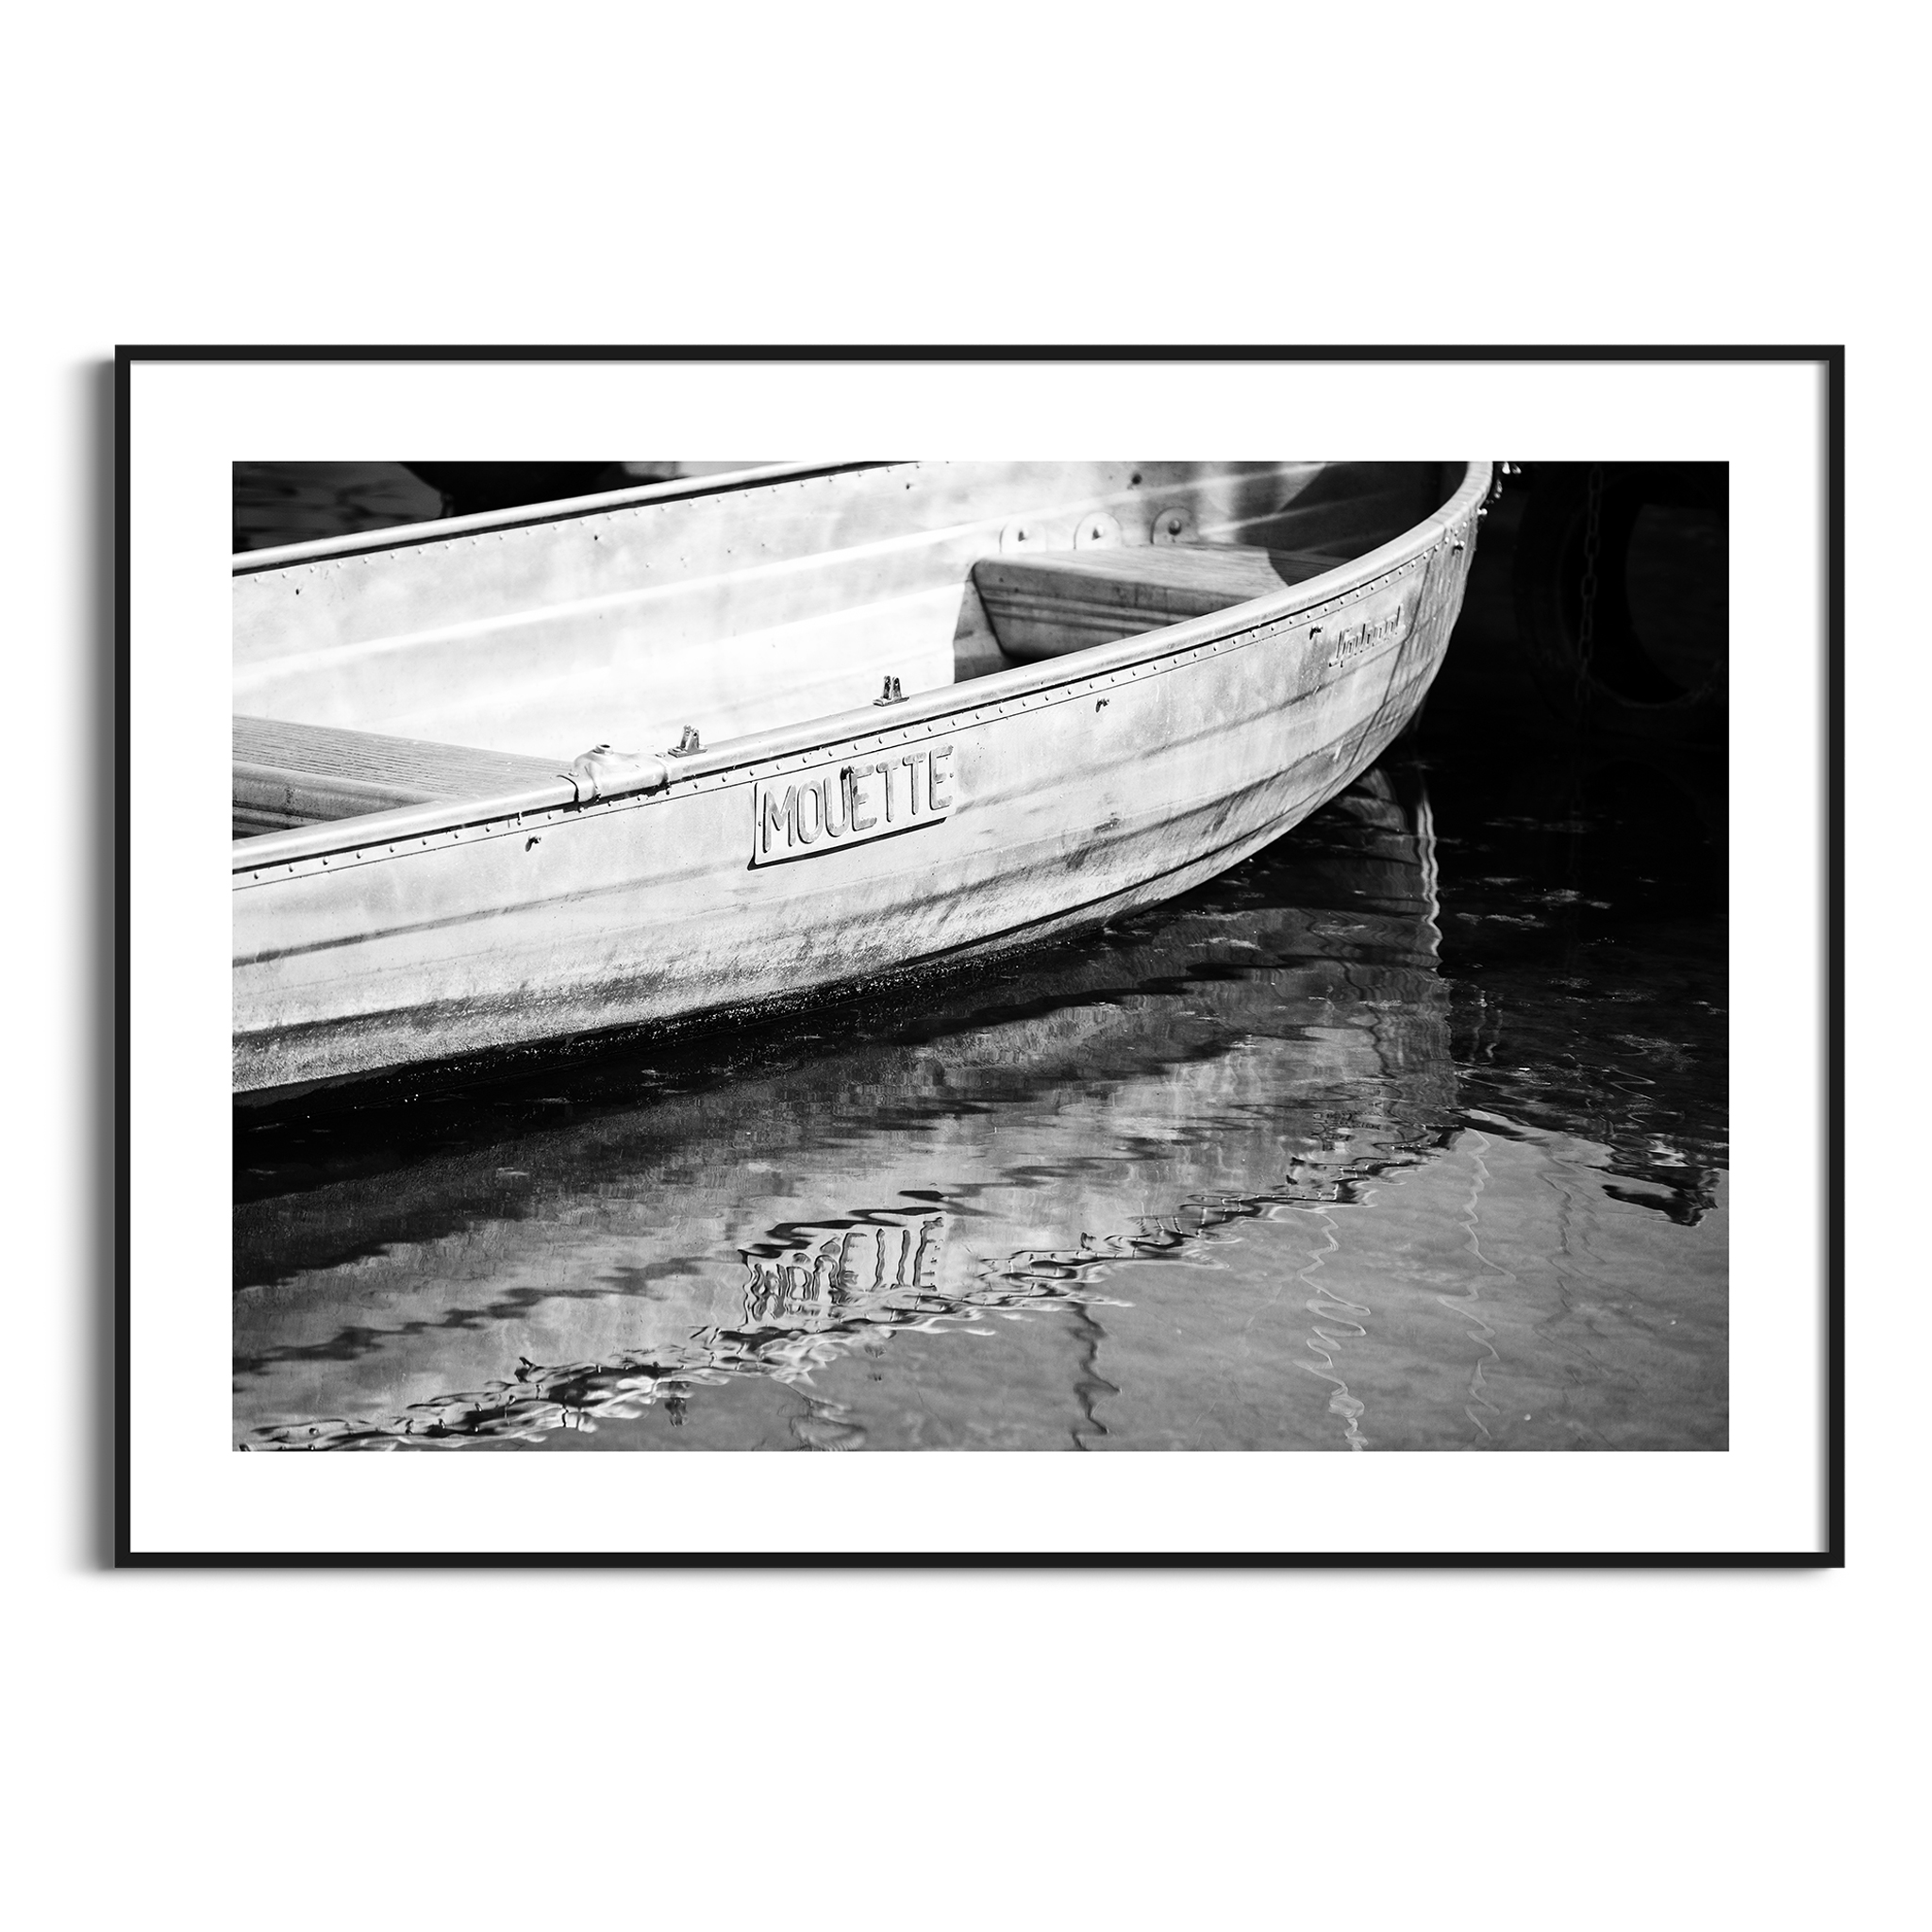 Boat in Geneva - black and white print with border in black frame